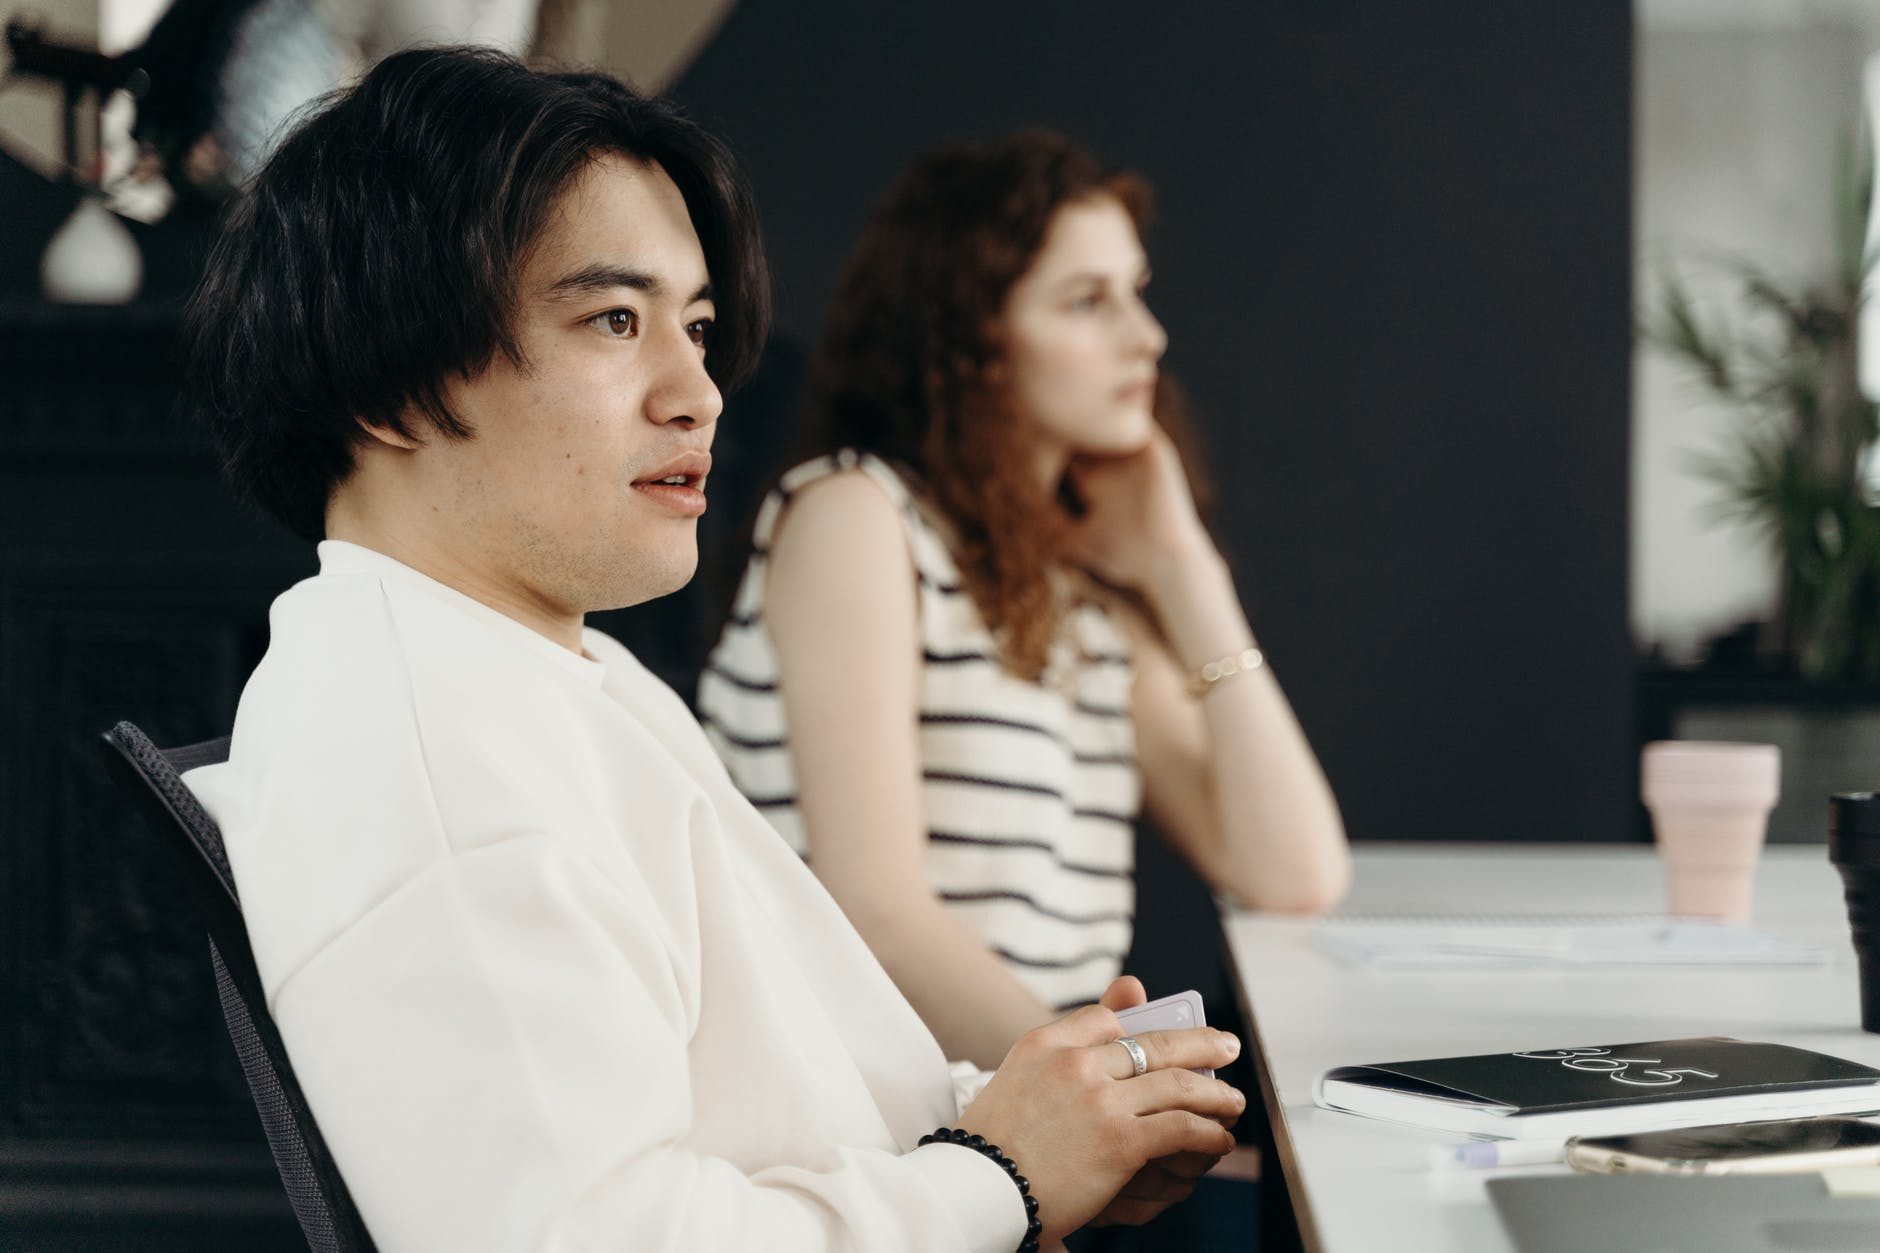 man in white sweater sitting beside a woman